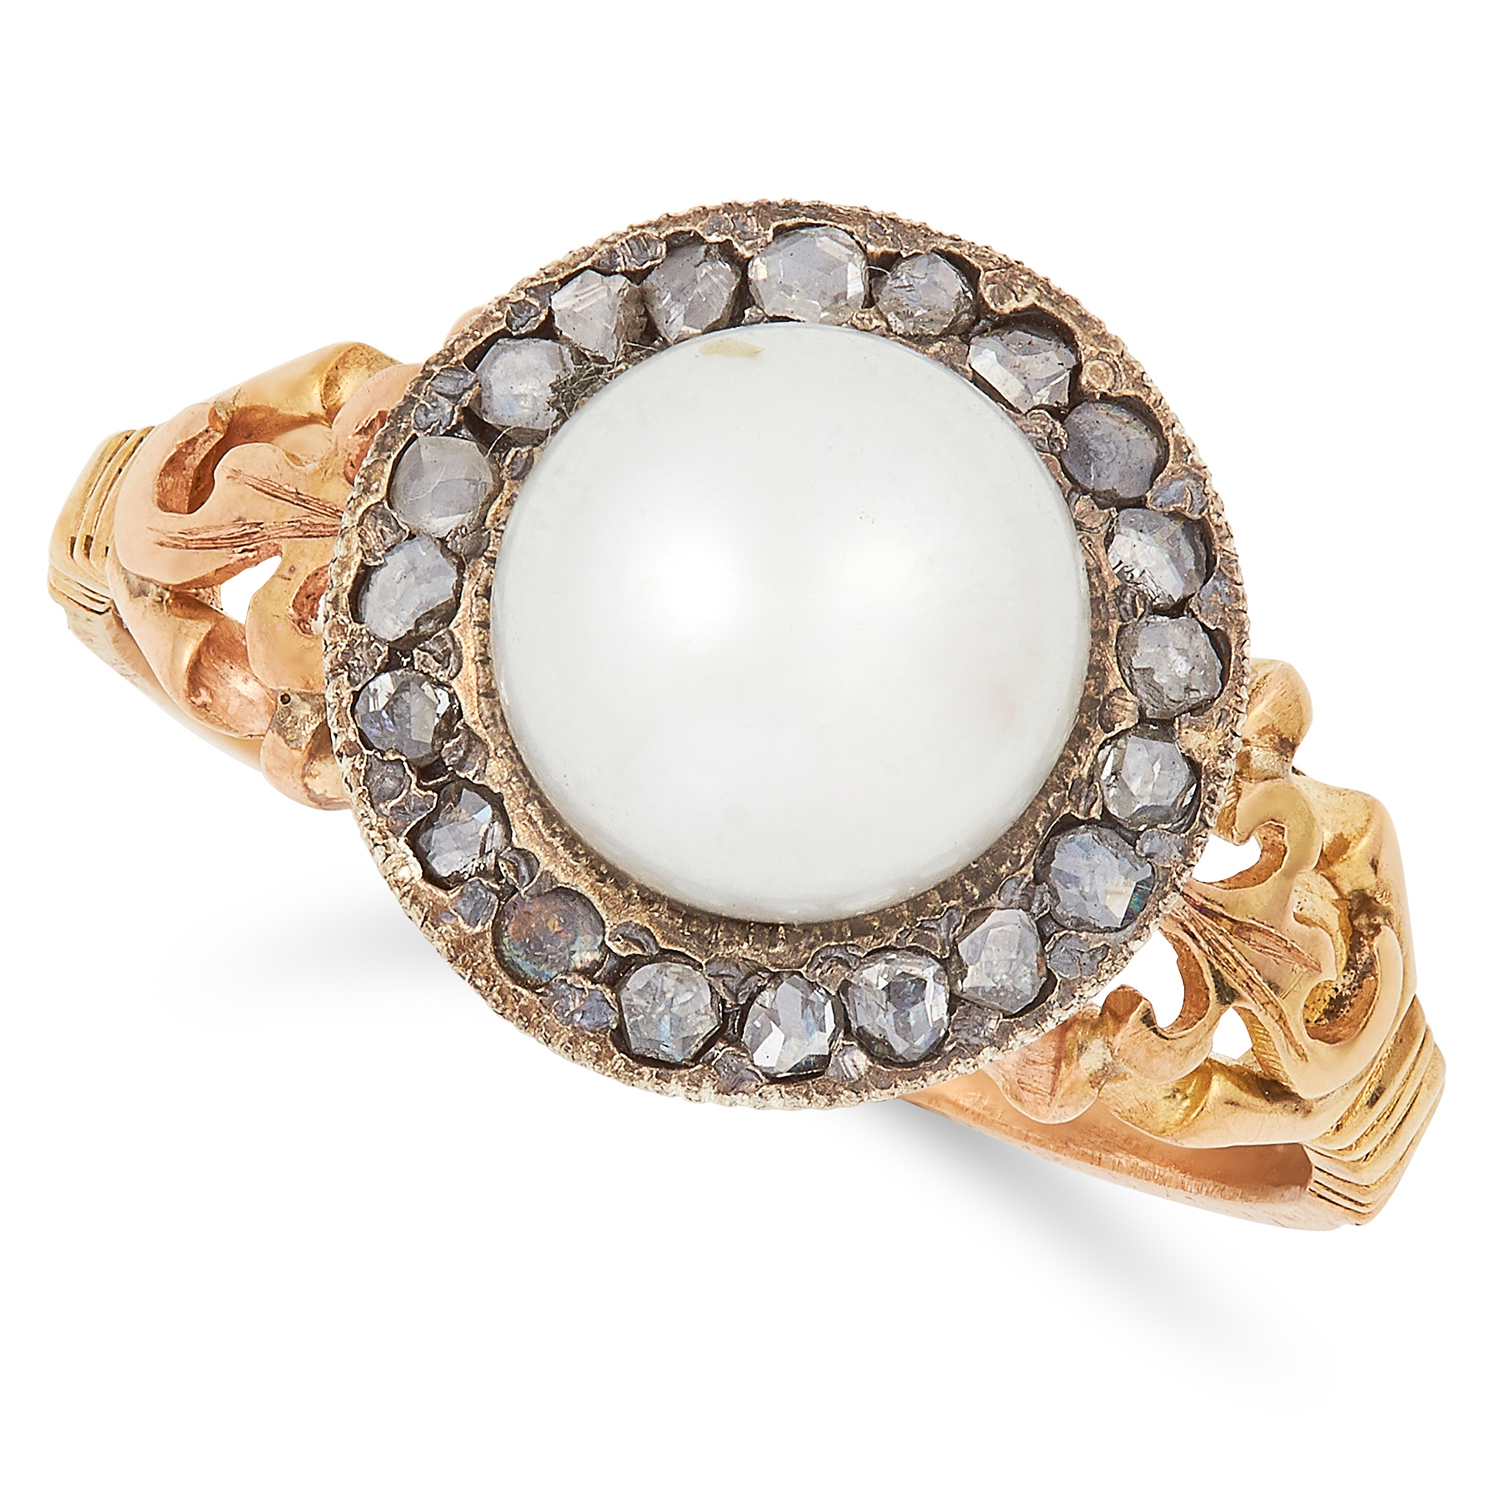 Los 11 - PEARL AND DIAMOND CLUSTER RING set with a pearl in a cluster of rose cut diamonds, size P / 7.5, 4.